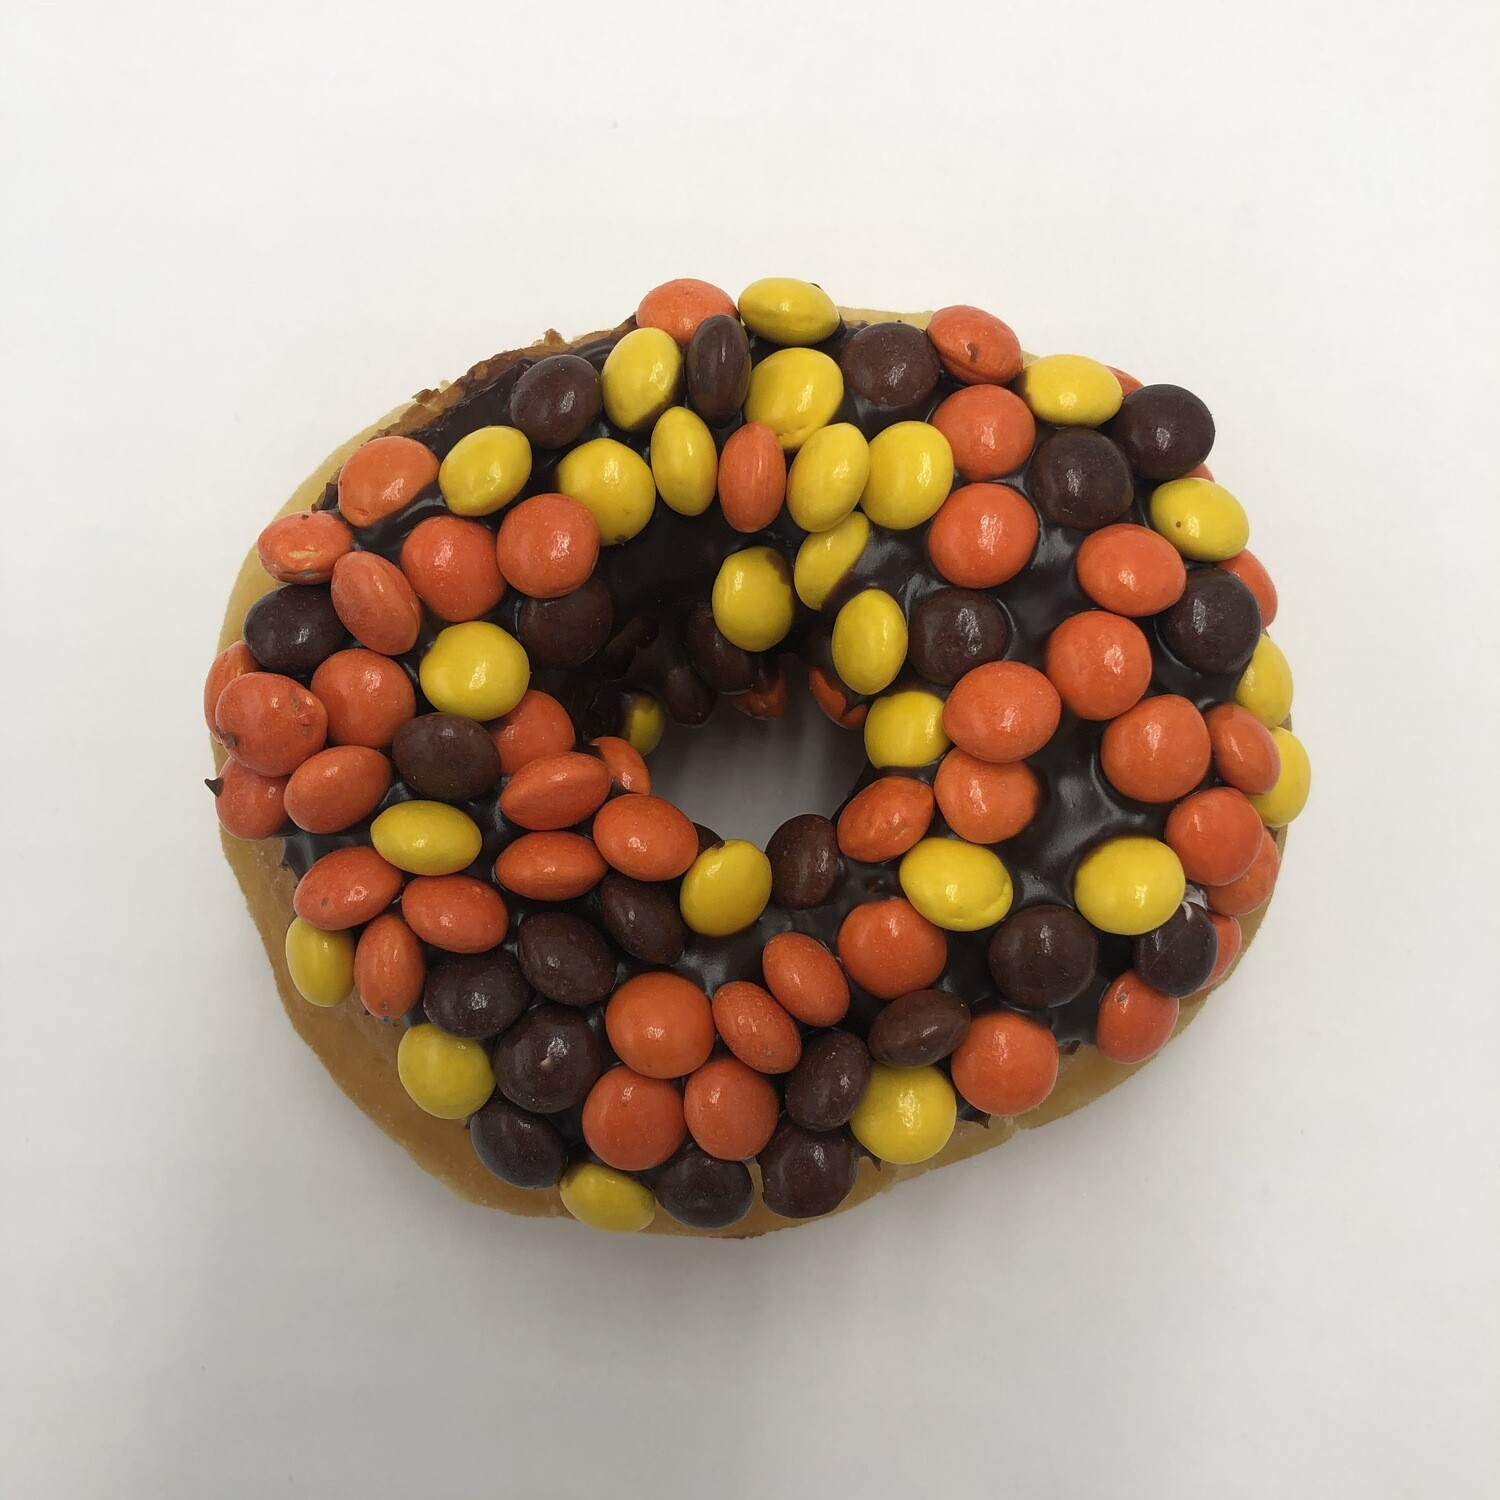 Reese's Pieces Yeast Raised Donut